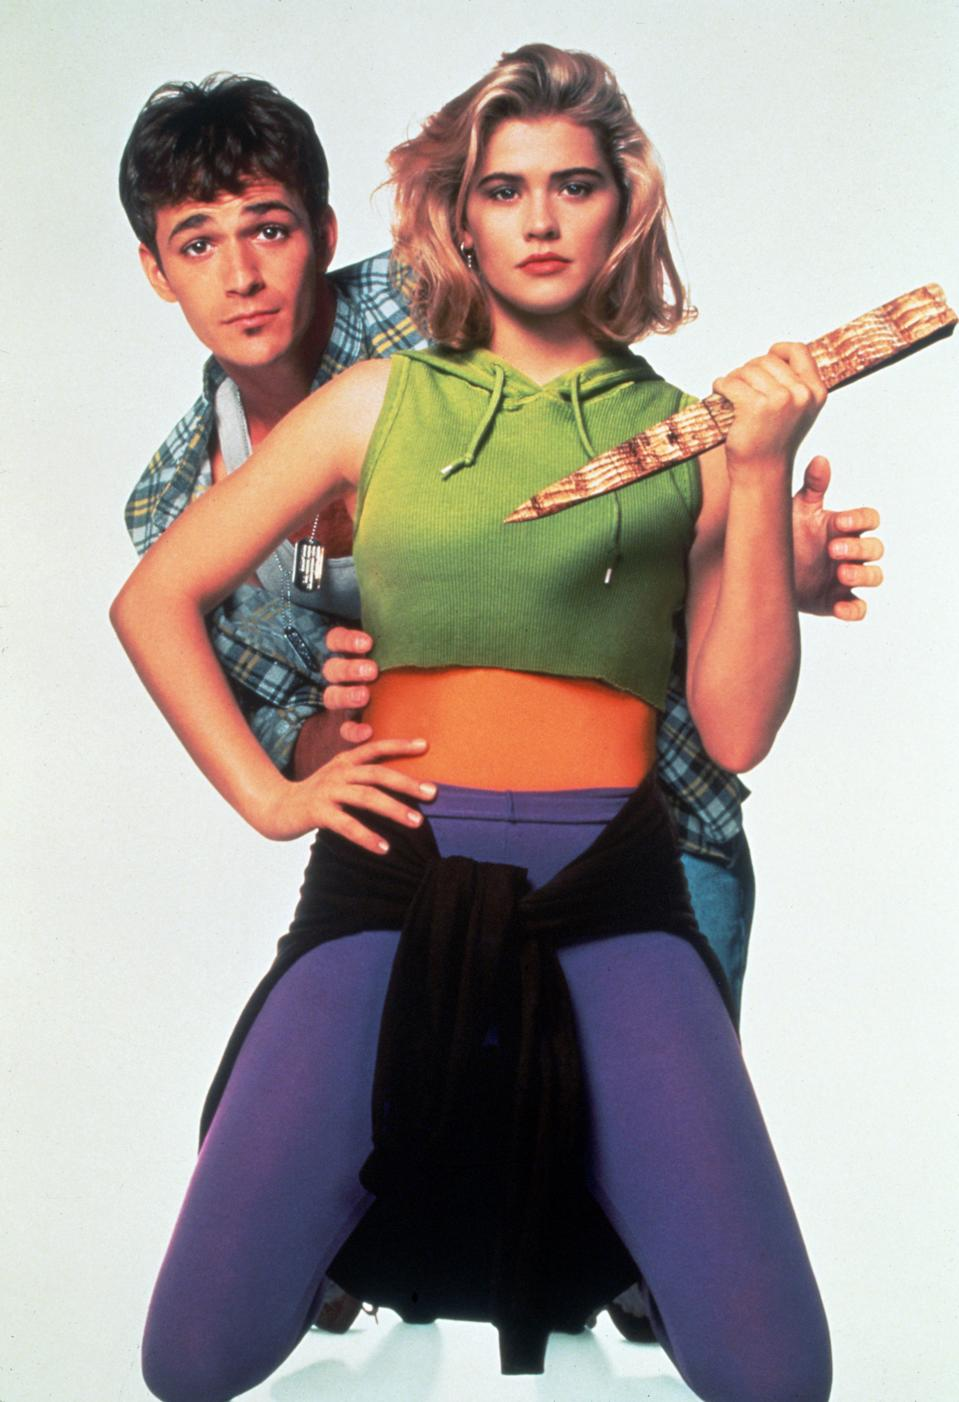 Editorial use only Mandatory Credit: Photo by Snap/REX/Shutterstock (390889he) FILM STILLS OF 'BUFFY, THE VAMPIRE SLAYER' WITH 1992, FRAN RUBEL KUZUI, LUKE PERRY, KRISTY SWANSON IN 1992 VARIOUS